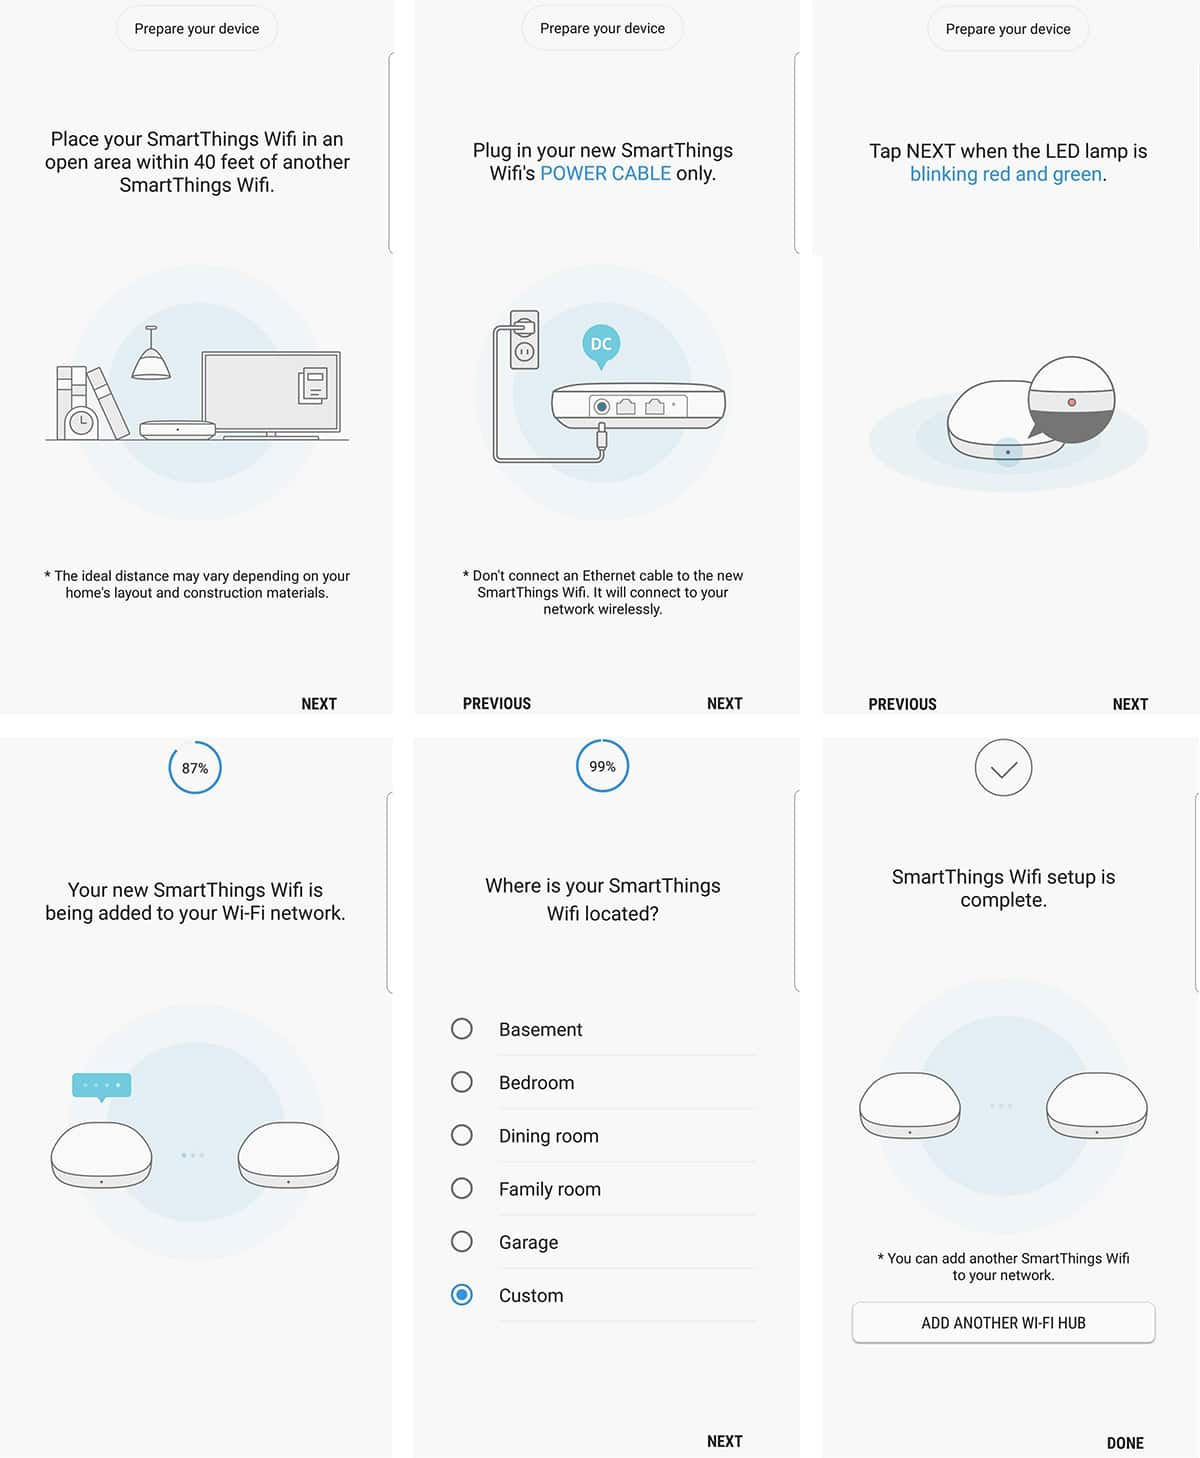 Simple setup instructions for the Samsung Smartthings Wifi System